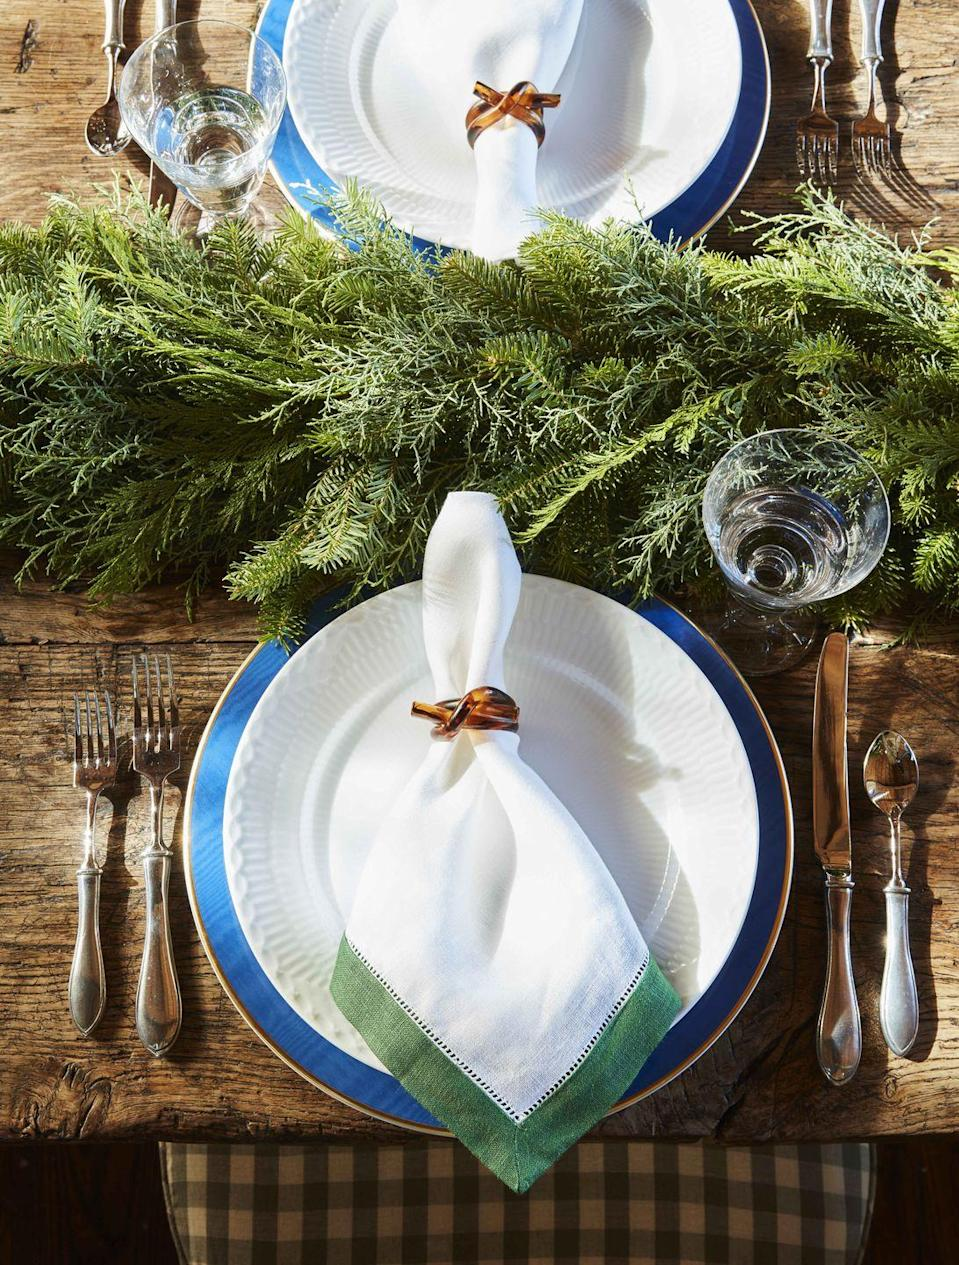 <p>Adding a simple, unadorned evergreen garland feels festive and autumnal without screaming Christmas. Mix in a few fall leaves for a little extra oomph.</p>